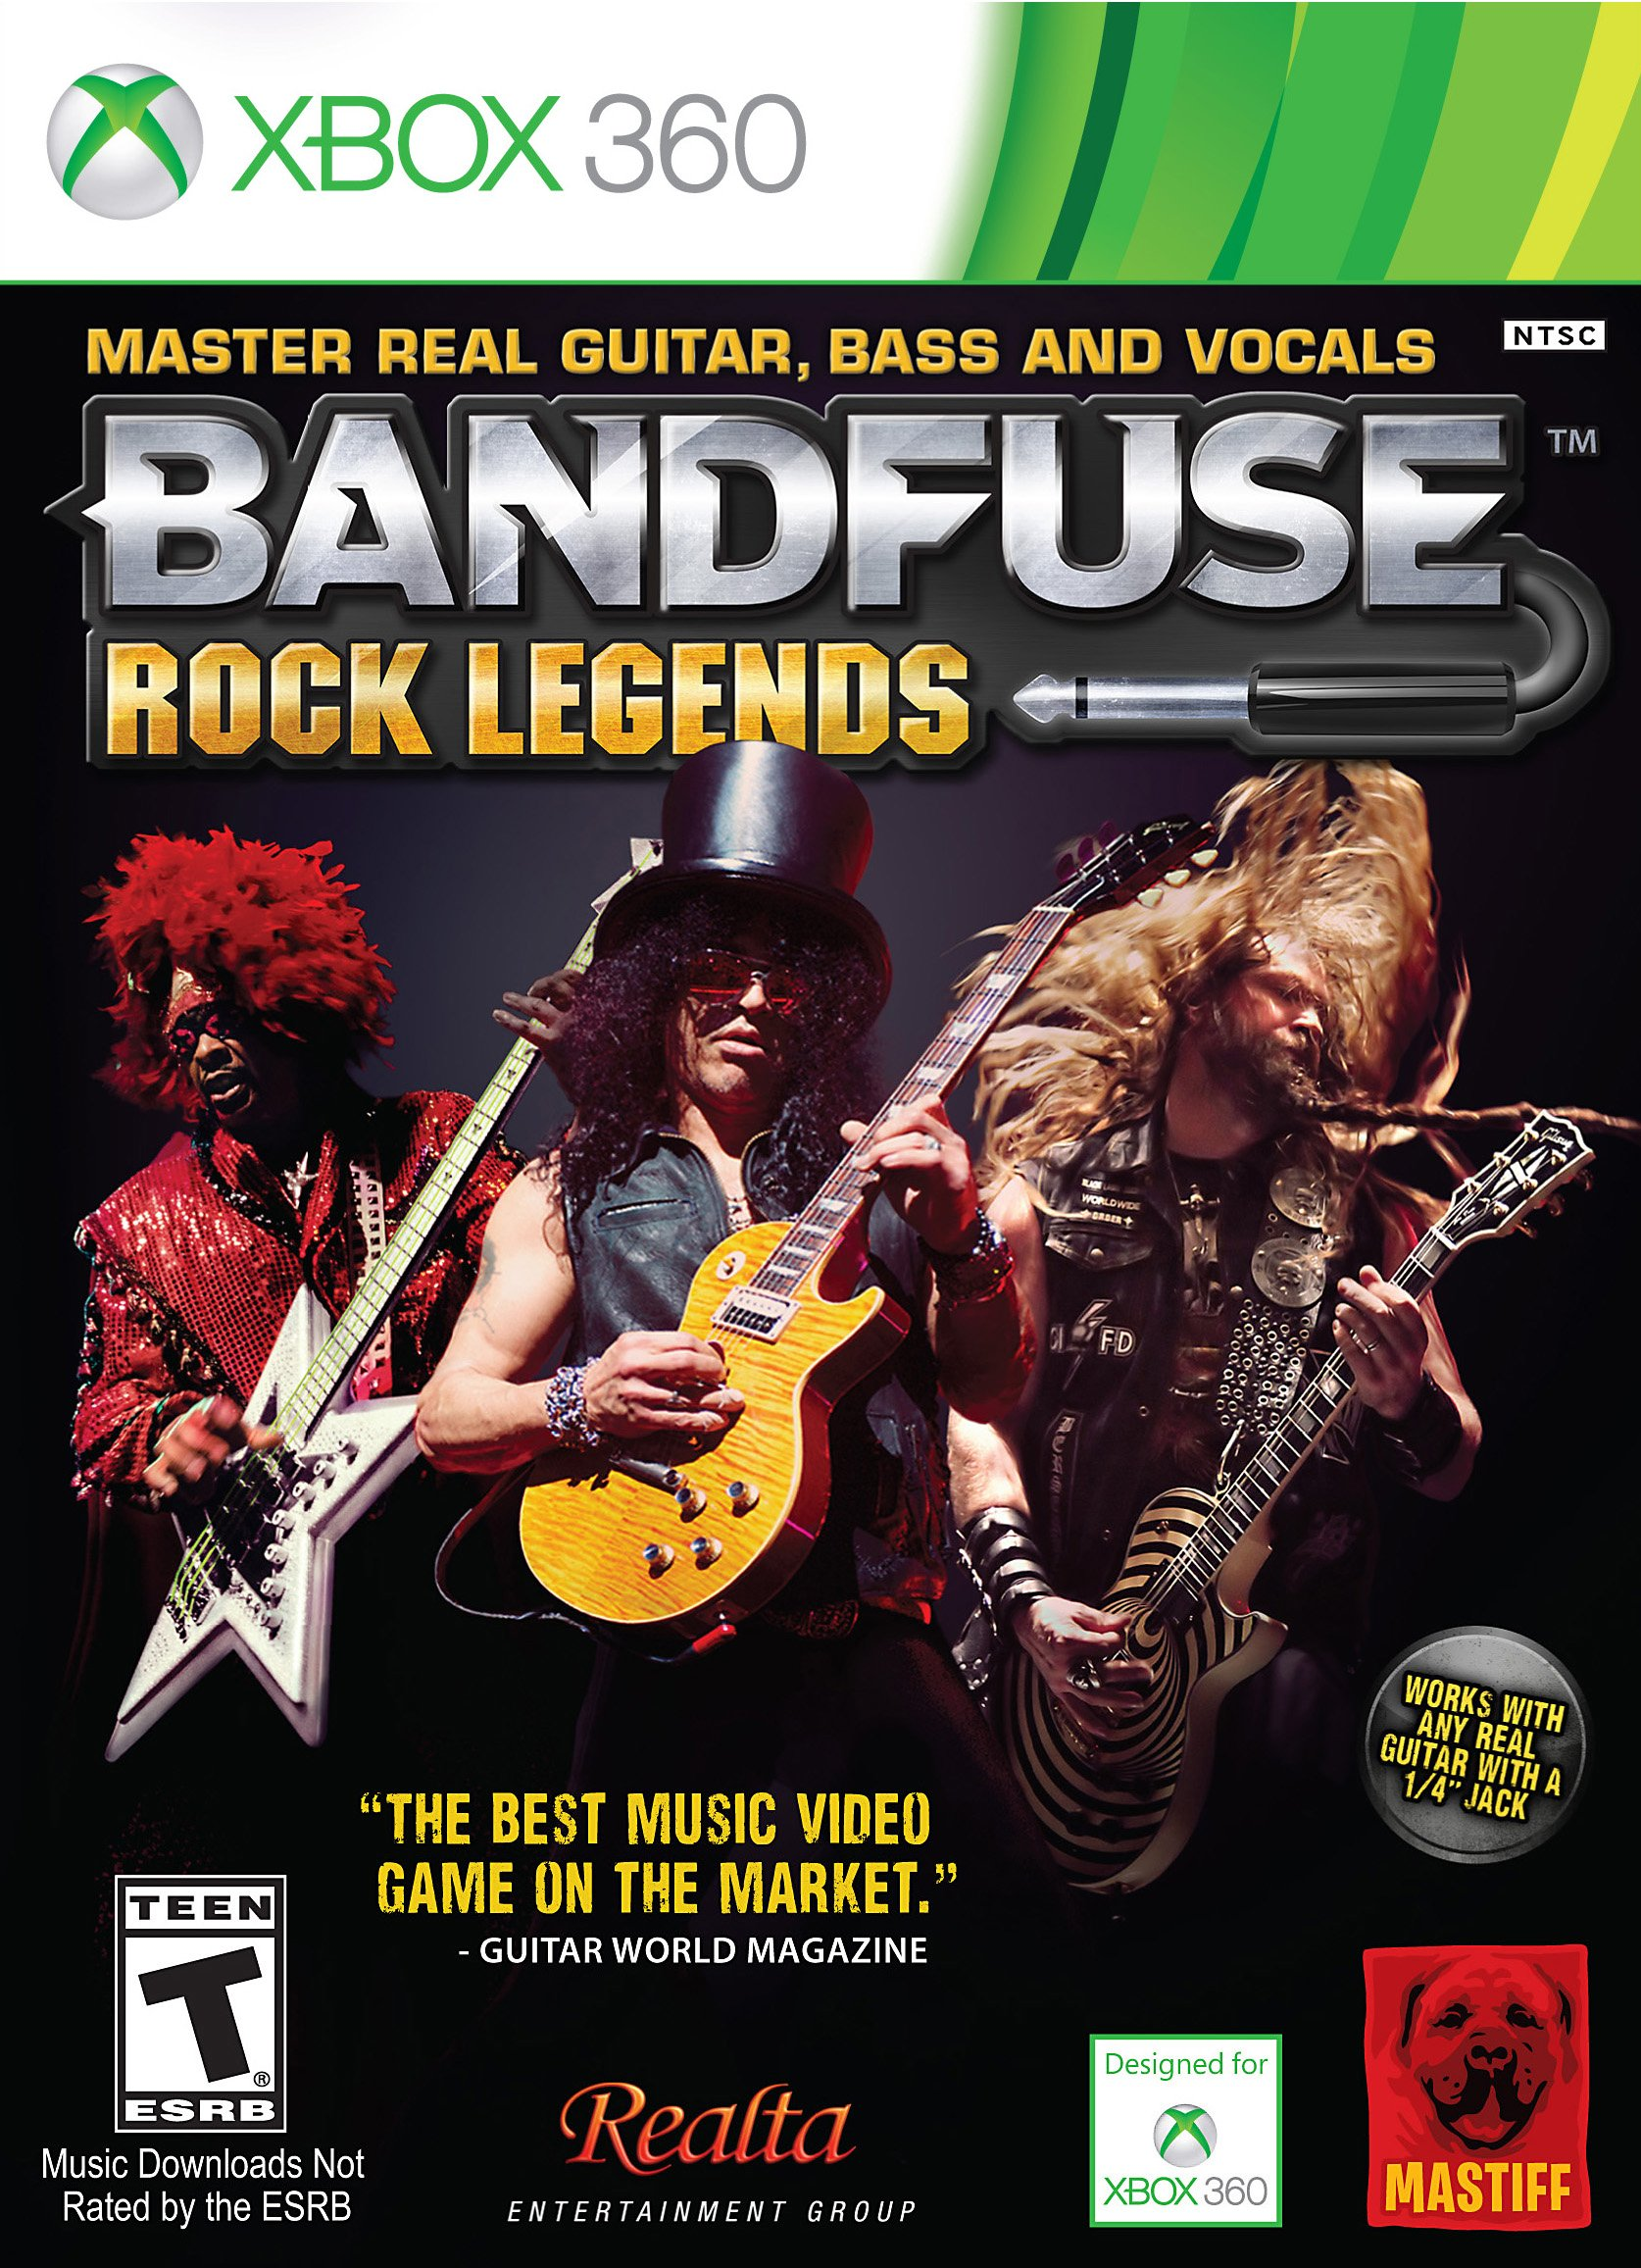 Fuse Xbox 360 Game Review : Band fuse rock legends artist pack release date xbox